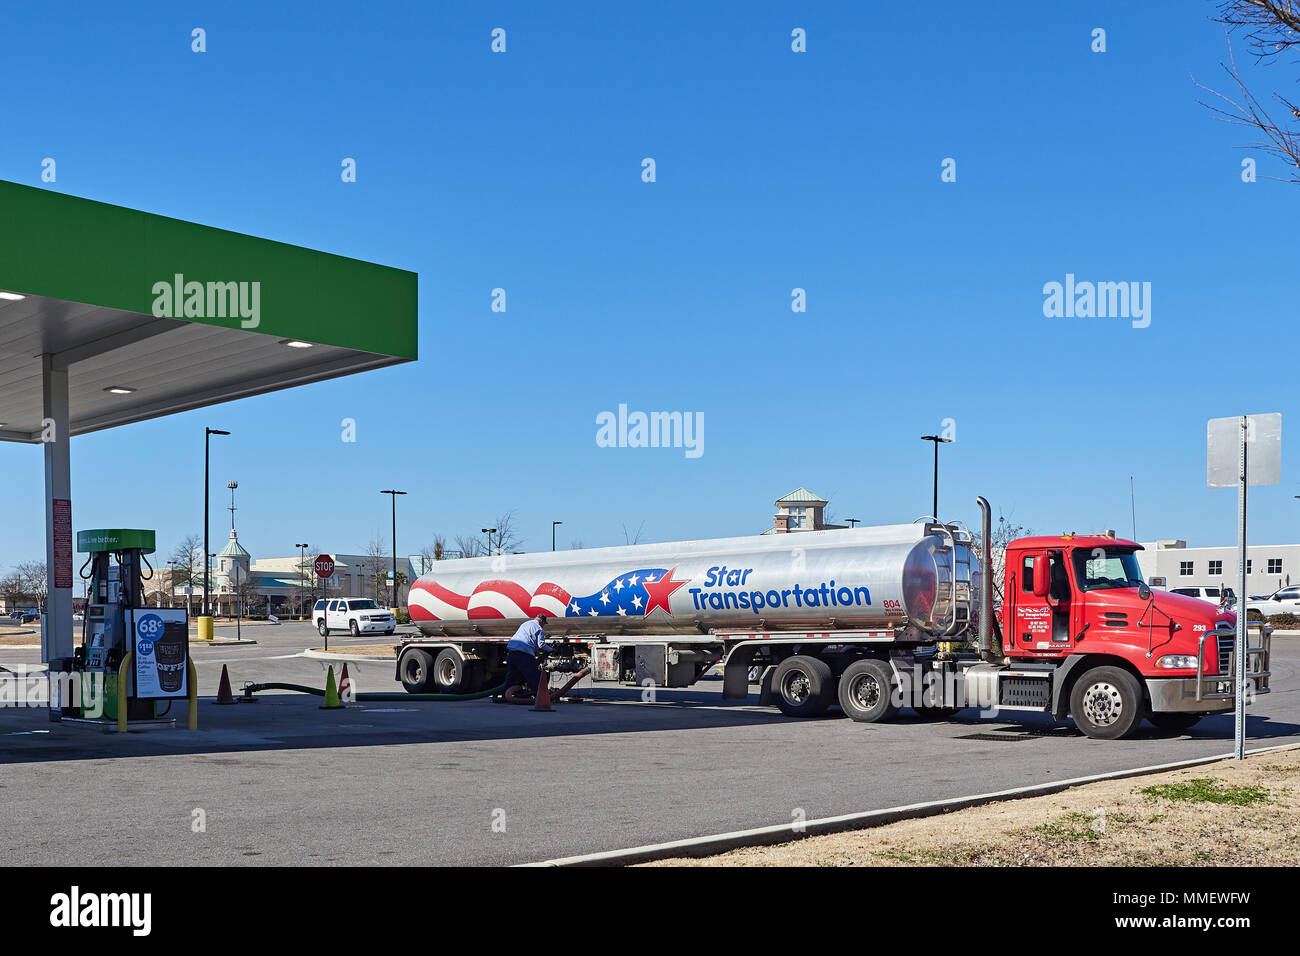 Gasoline or petrol tank truck supplying or off loading fuel at a retail gas station in Montgomery Alabama, USA. - Stock Image